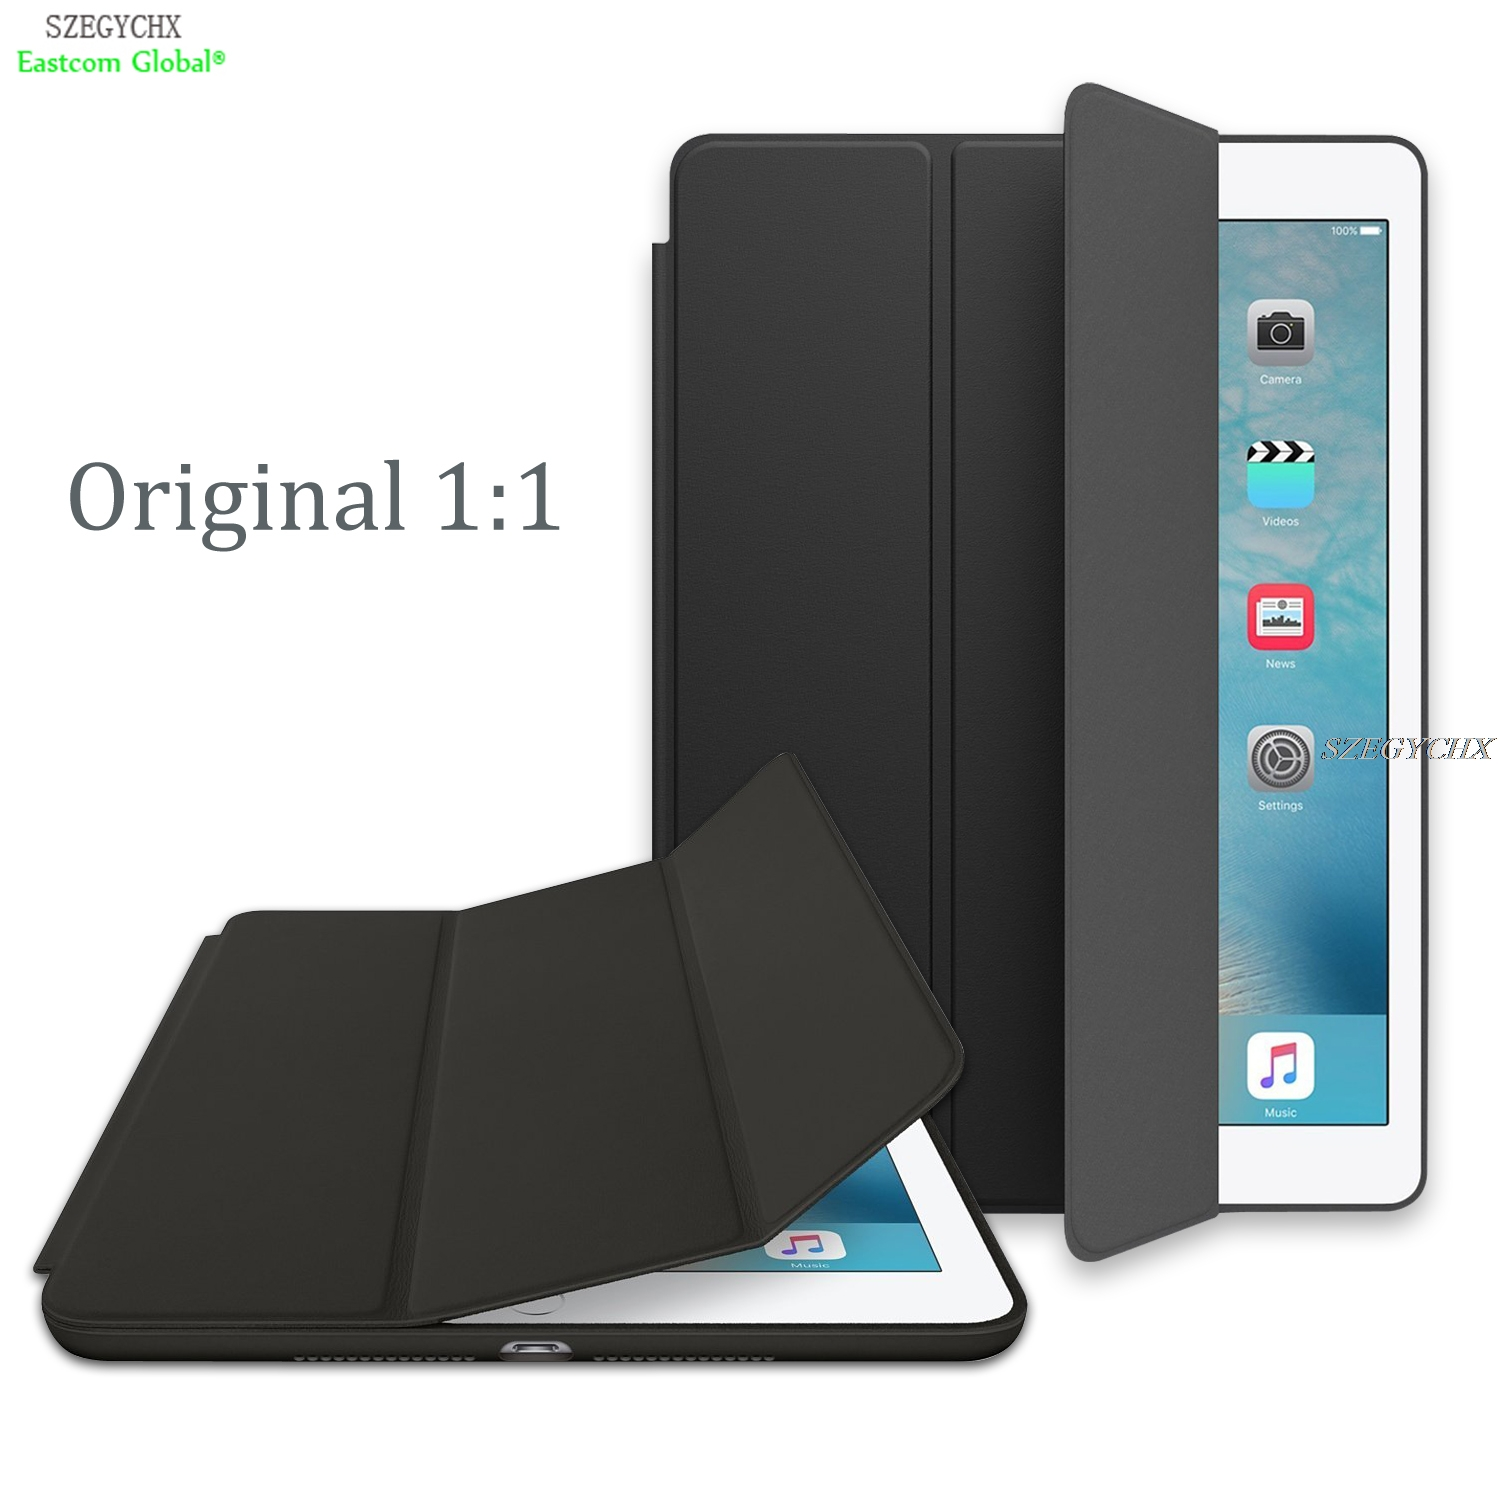 Case For apple iPad Mini 4 , SZEGYCHX Original 1:1 Ultra Slim Smart Cover Stand For ipad case Auto Wake / Sleep with LOGO case for apple ipad mini 4 szegychx original 1 1 ultra slim smart cover stand for ipad case auto wake sleep with logo